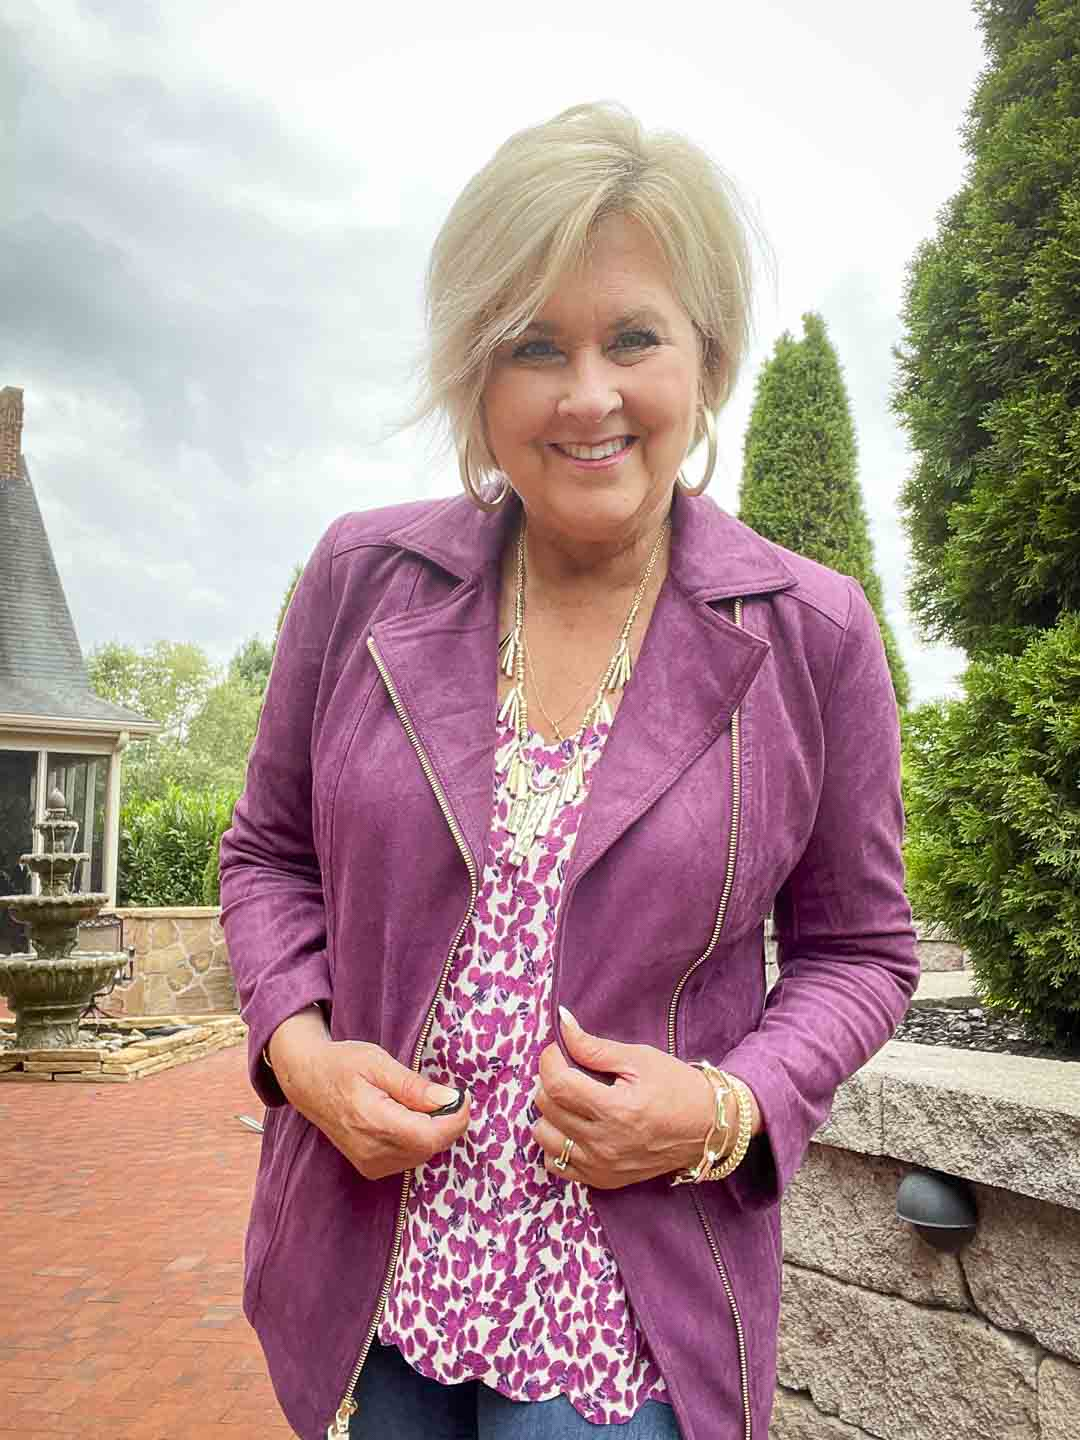 Over 40 fashion blogger, Tania Stephens is wearing a plum moto jacket with a printed camisole